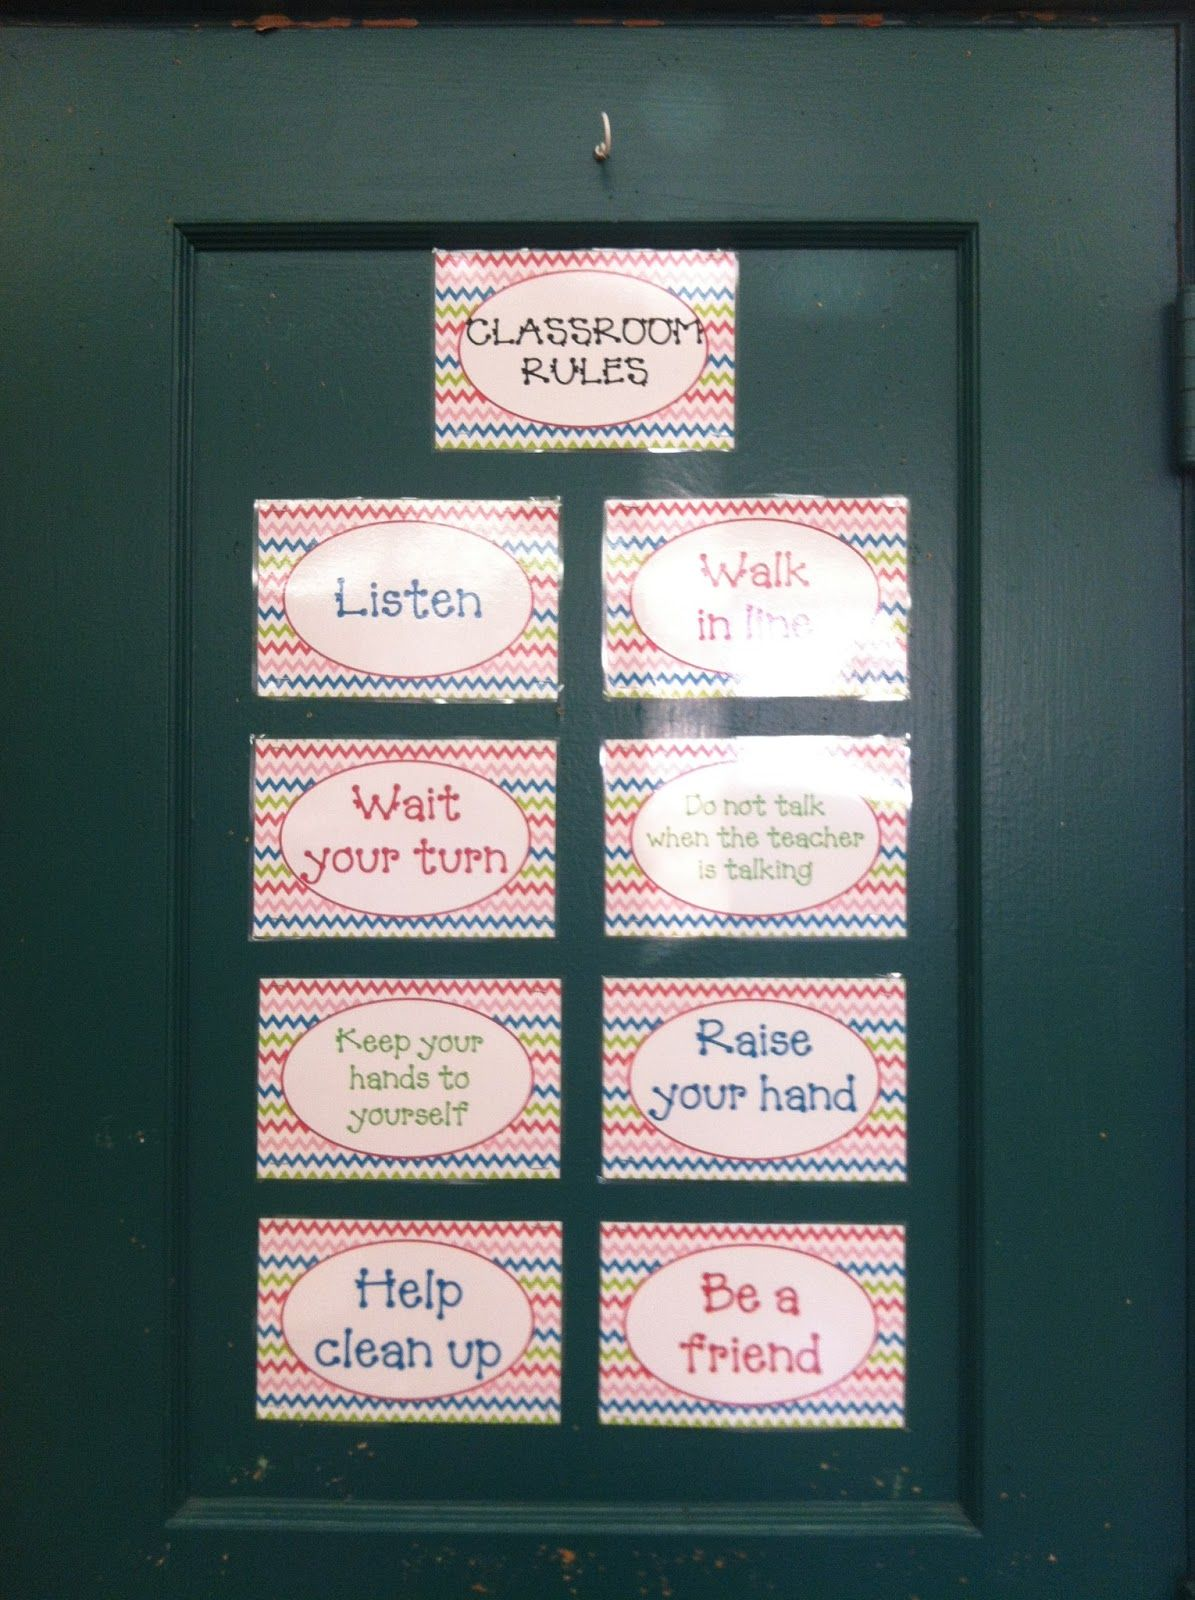 wonderful design my own classroom #5: classroom layout for grade 6 | decided to design my own classroom rules,  because I